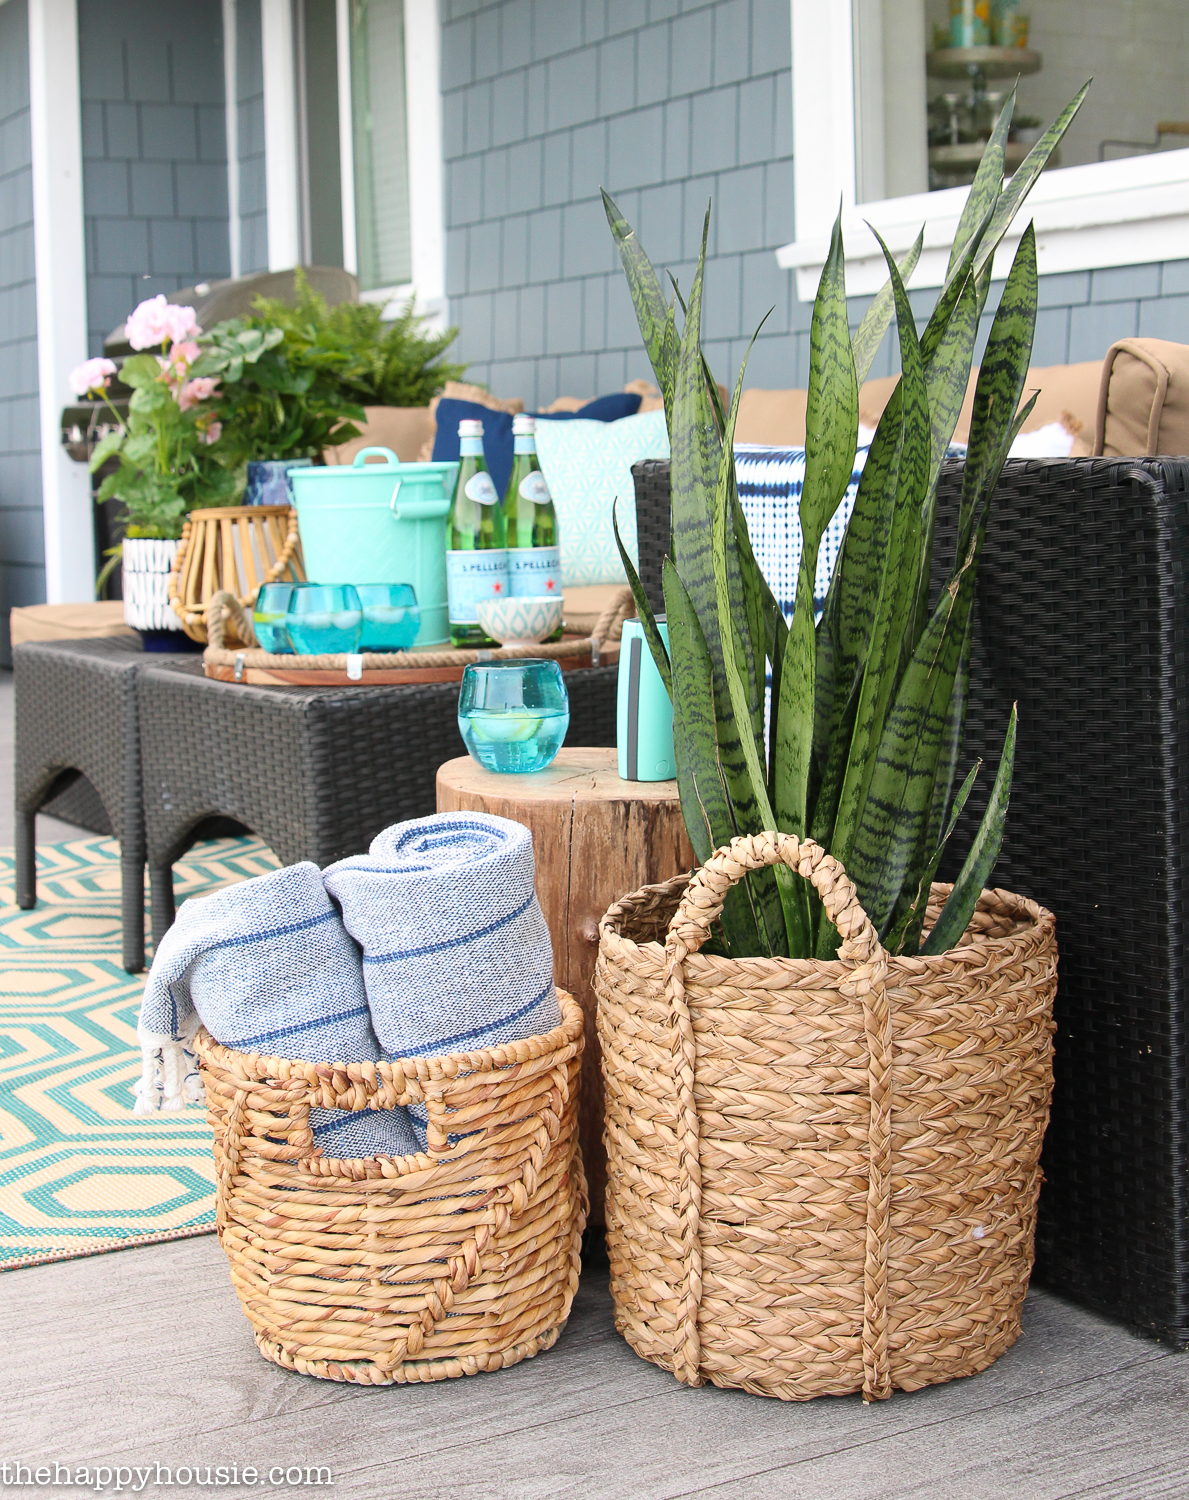 Lakefront-Deck-outdoor-deck-lounge-area-beautiful-cozy-deck-seating-area-featuring-finds-from-HomeSense-23.jpg